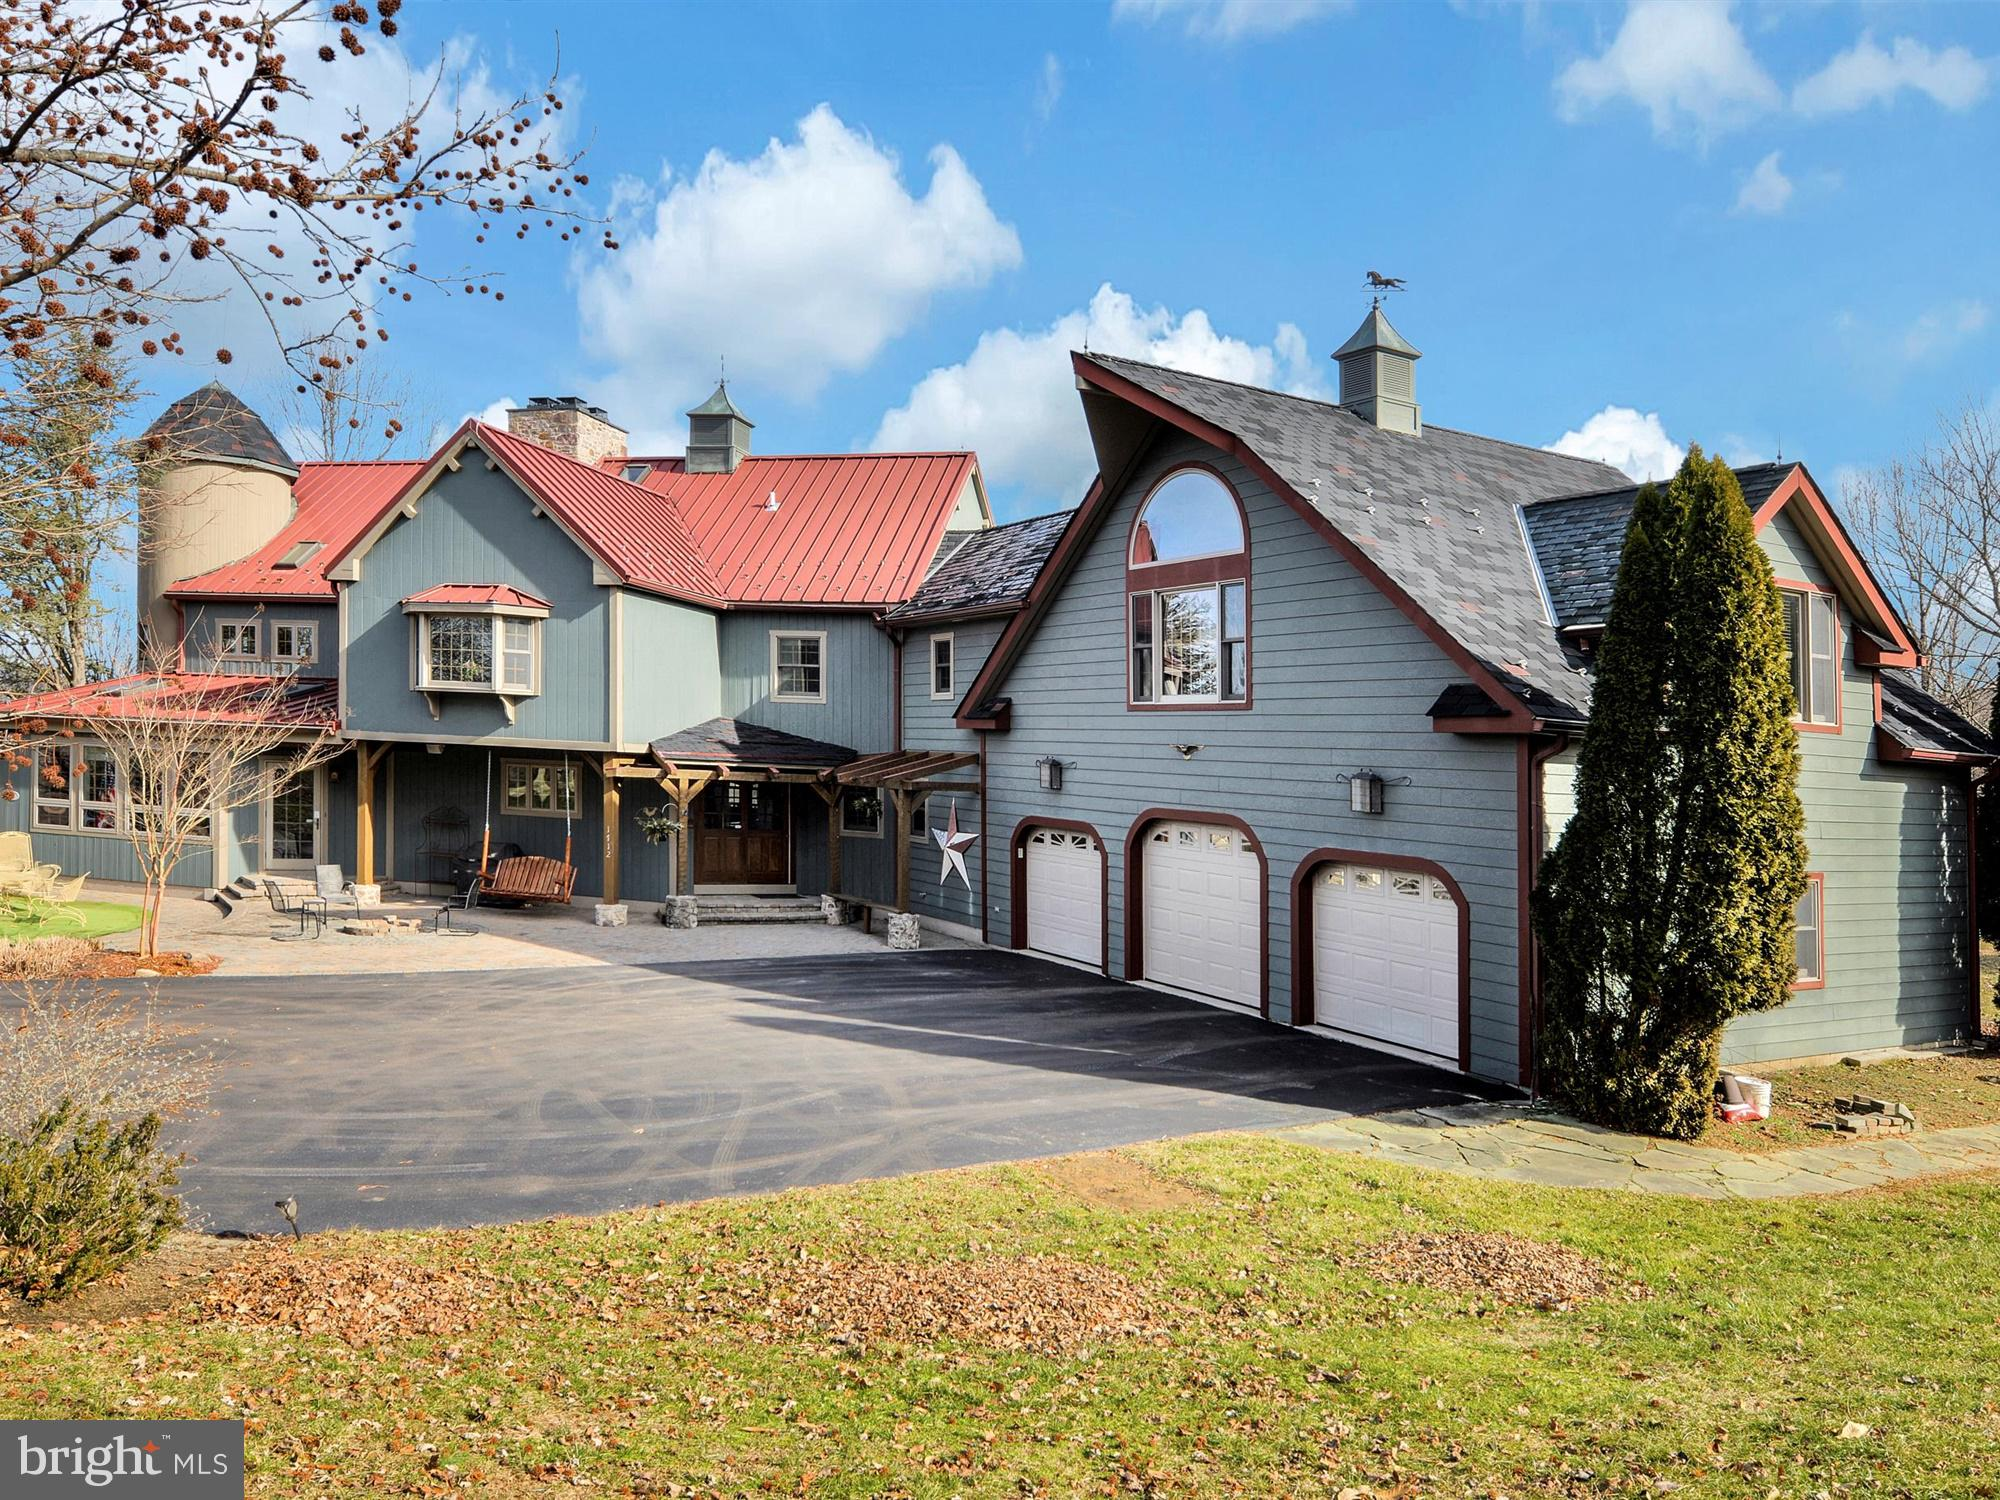 1712 VALLEY LANE, CHESTER SPRINGS, PA 19425